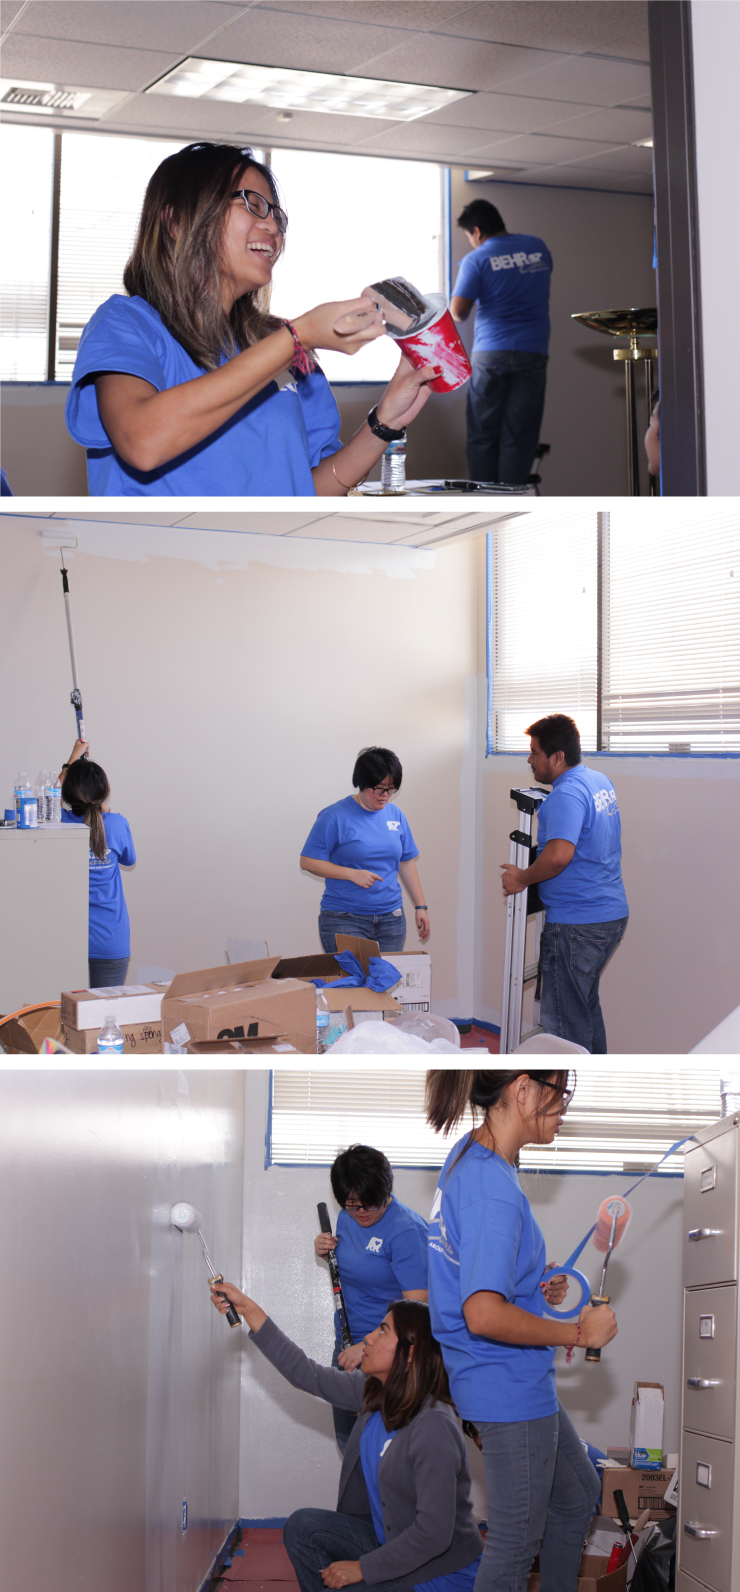 Multiple people prepping, taping and painting the art room.